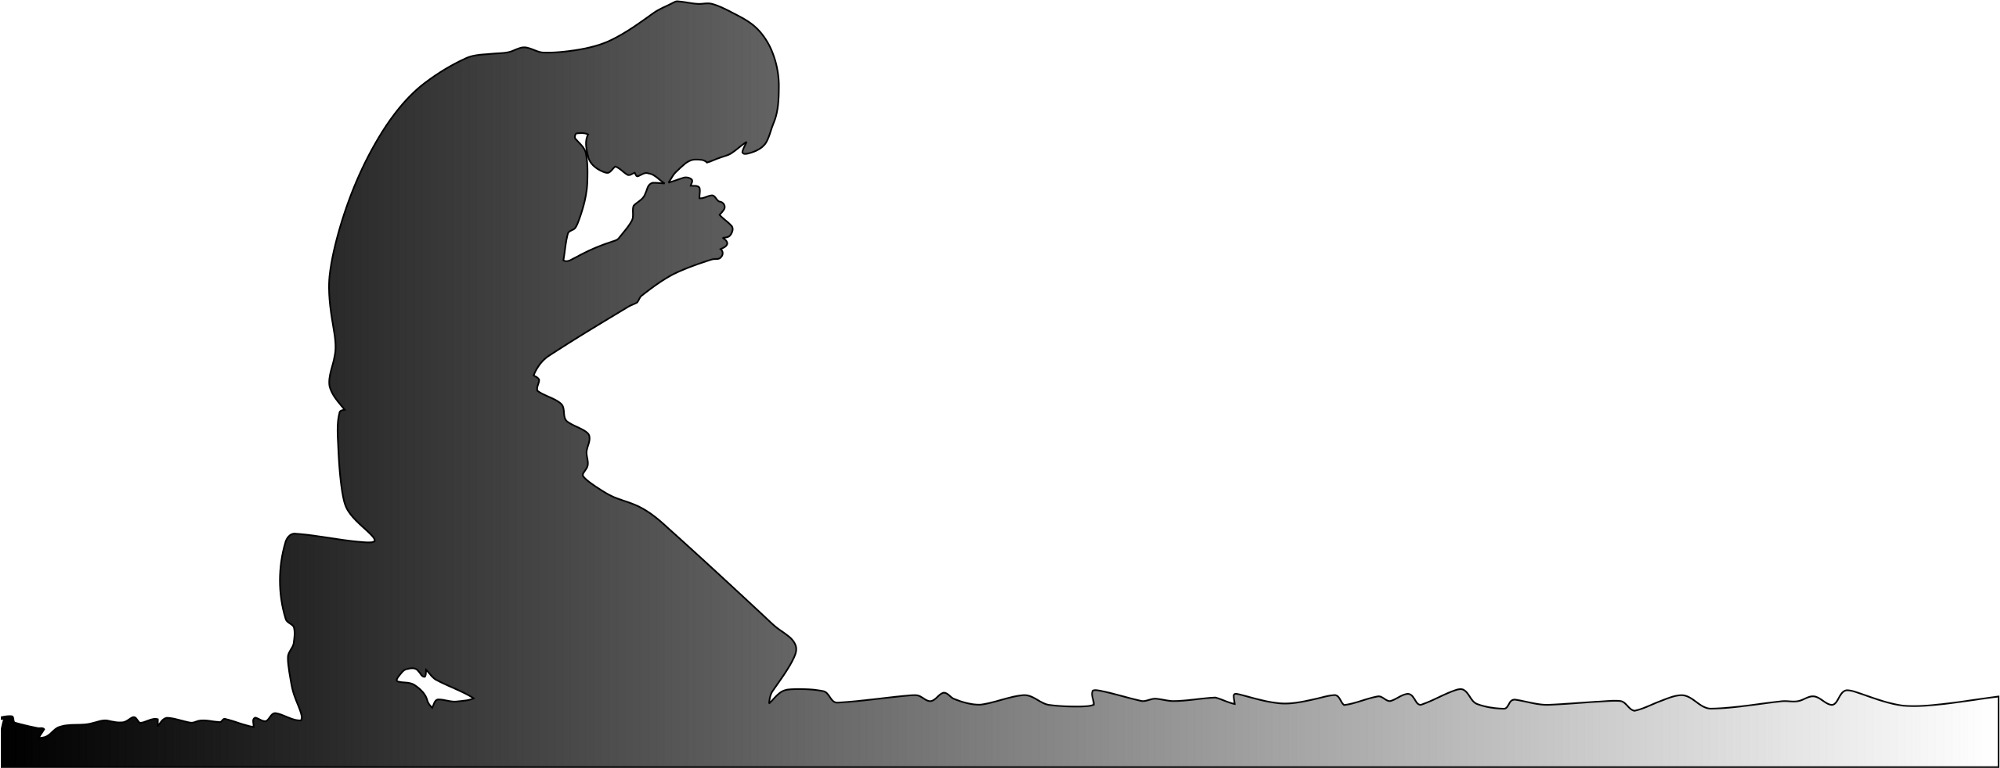 Silhouette — Man kneeling in prayer